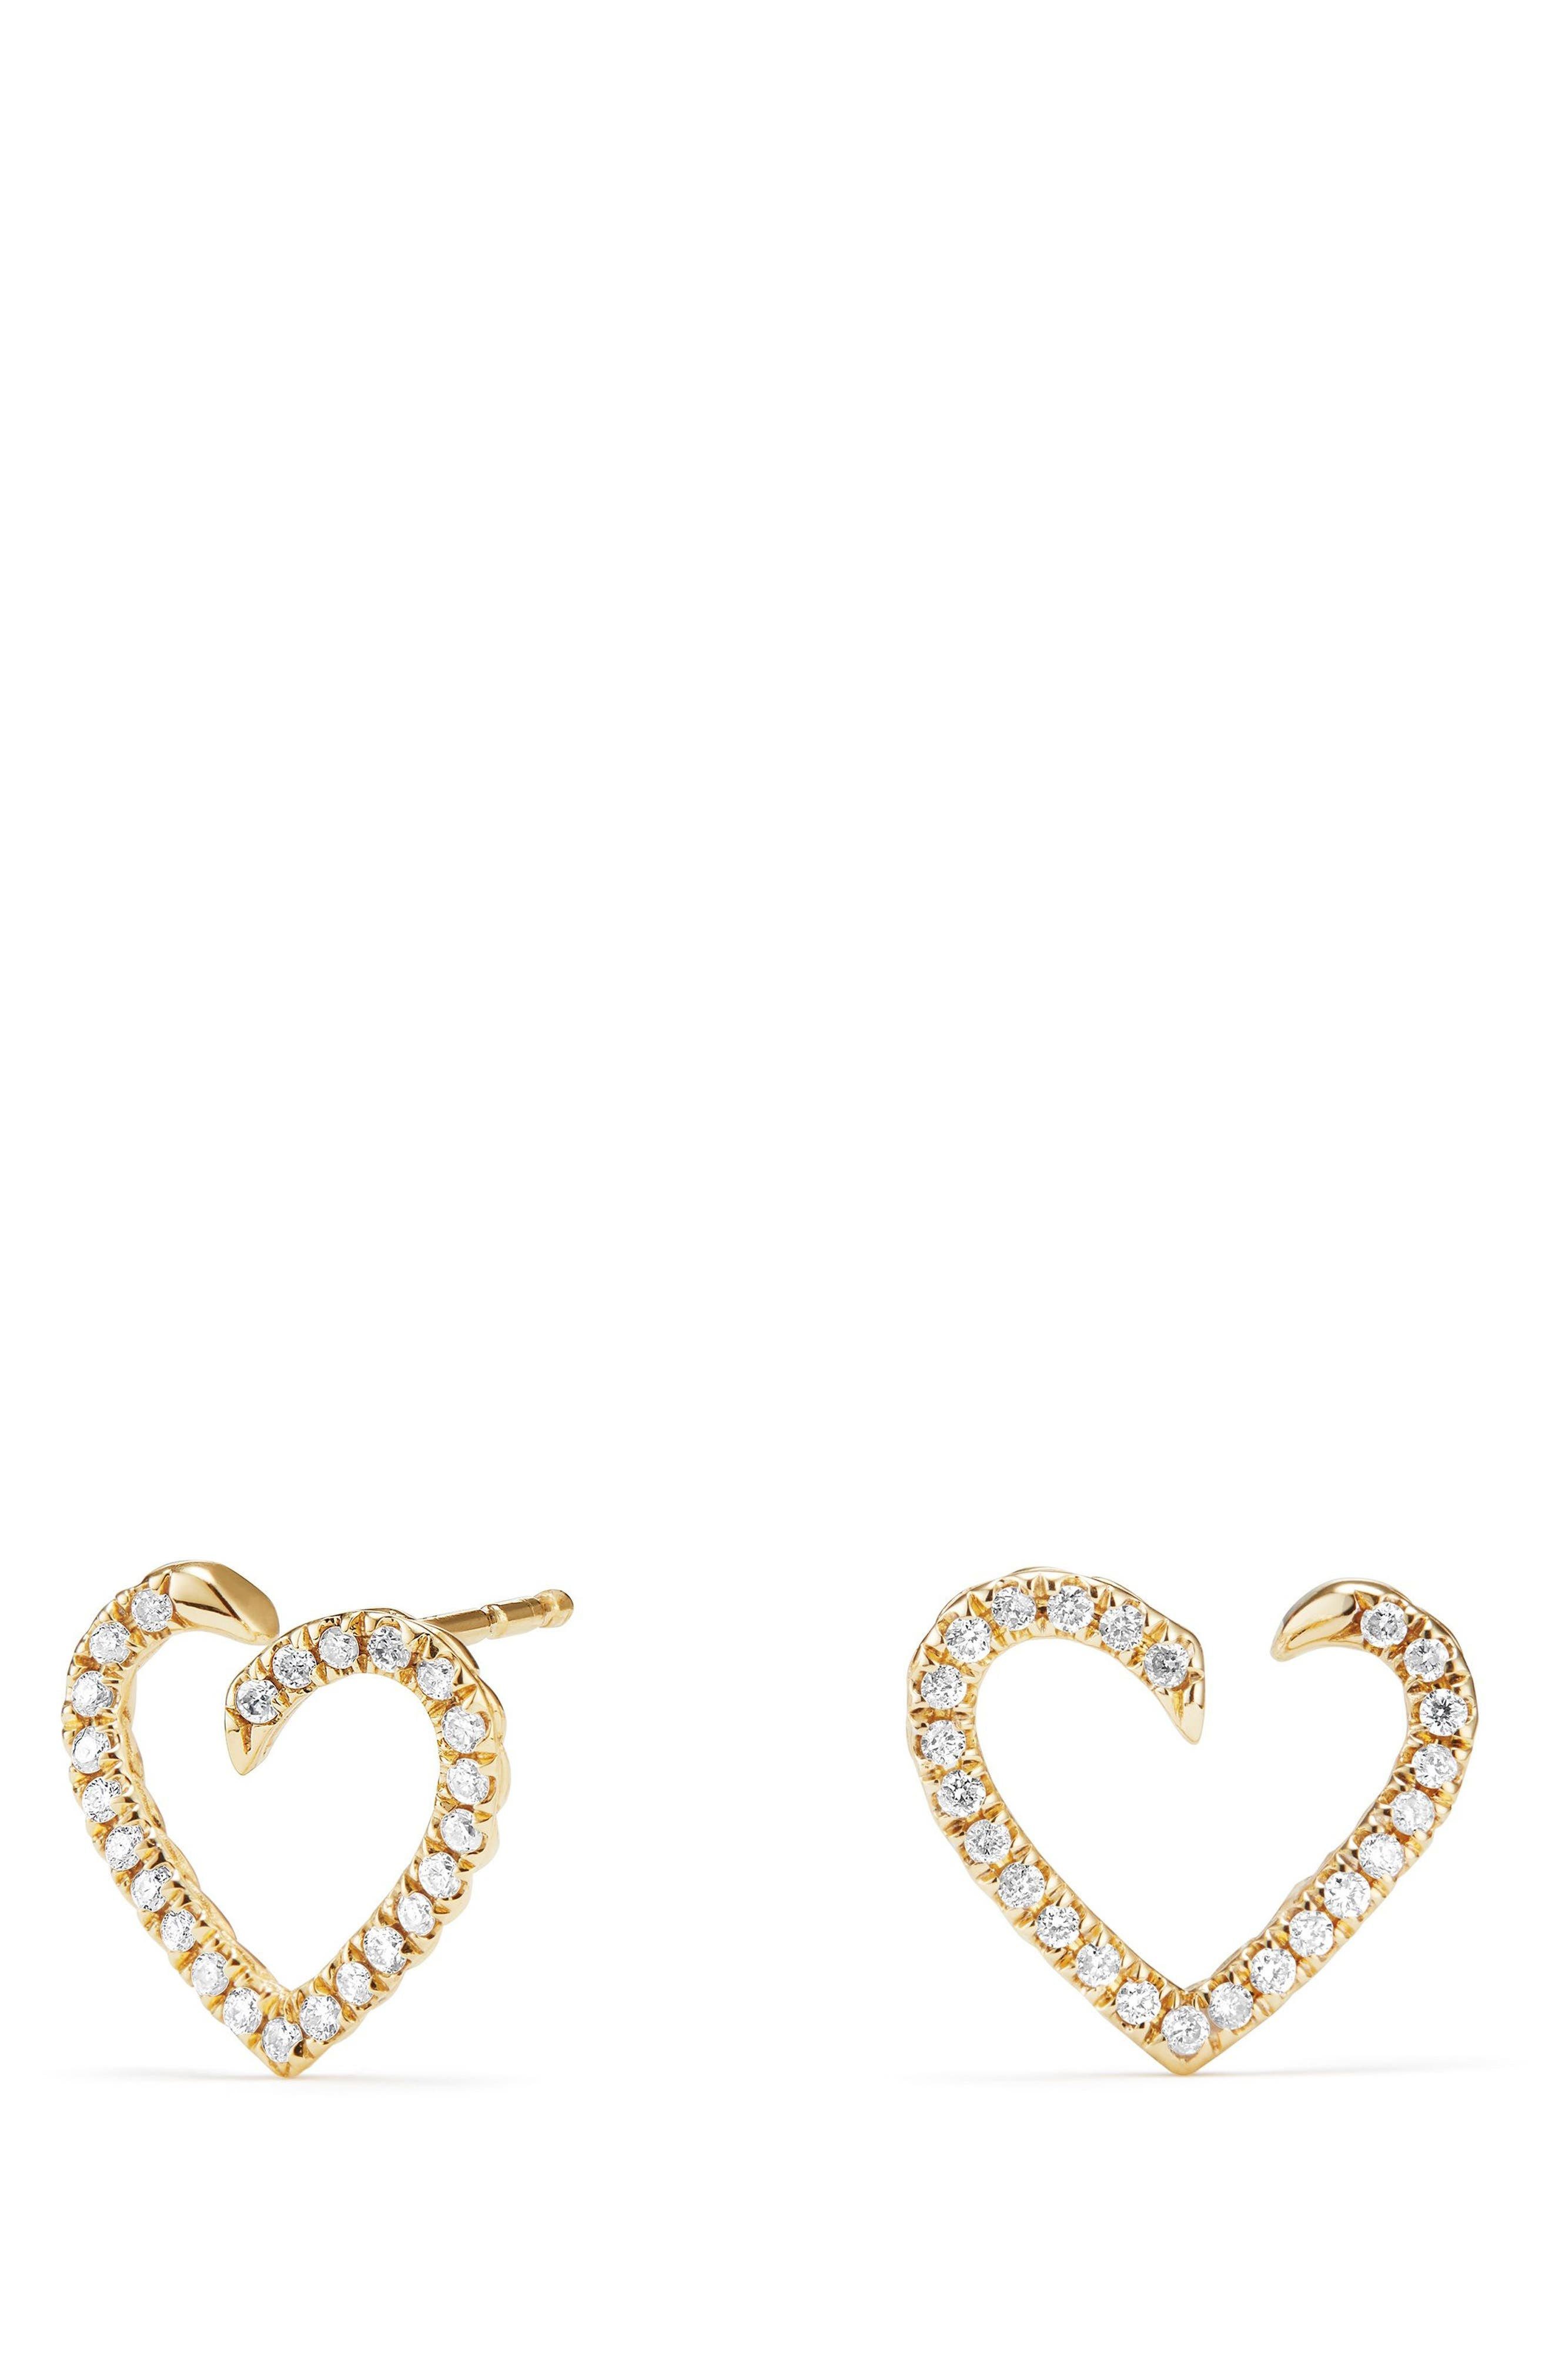 Heart Wrap Earrings with Diamonds in 18K Gold,                         Main,                         color, GOLD/ DIAMOND